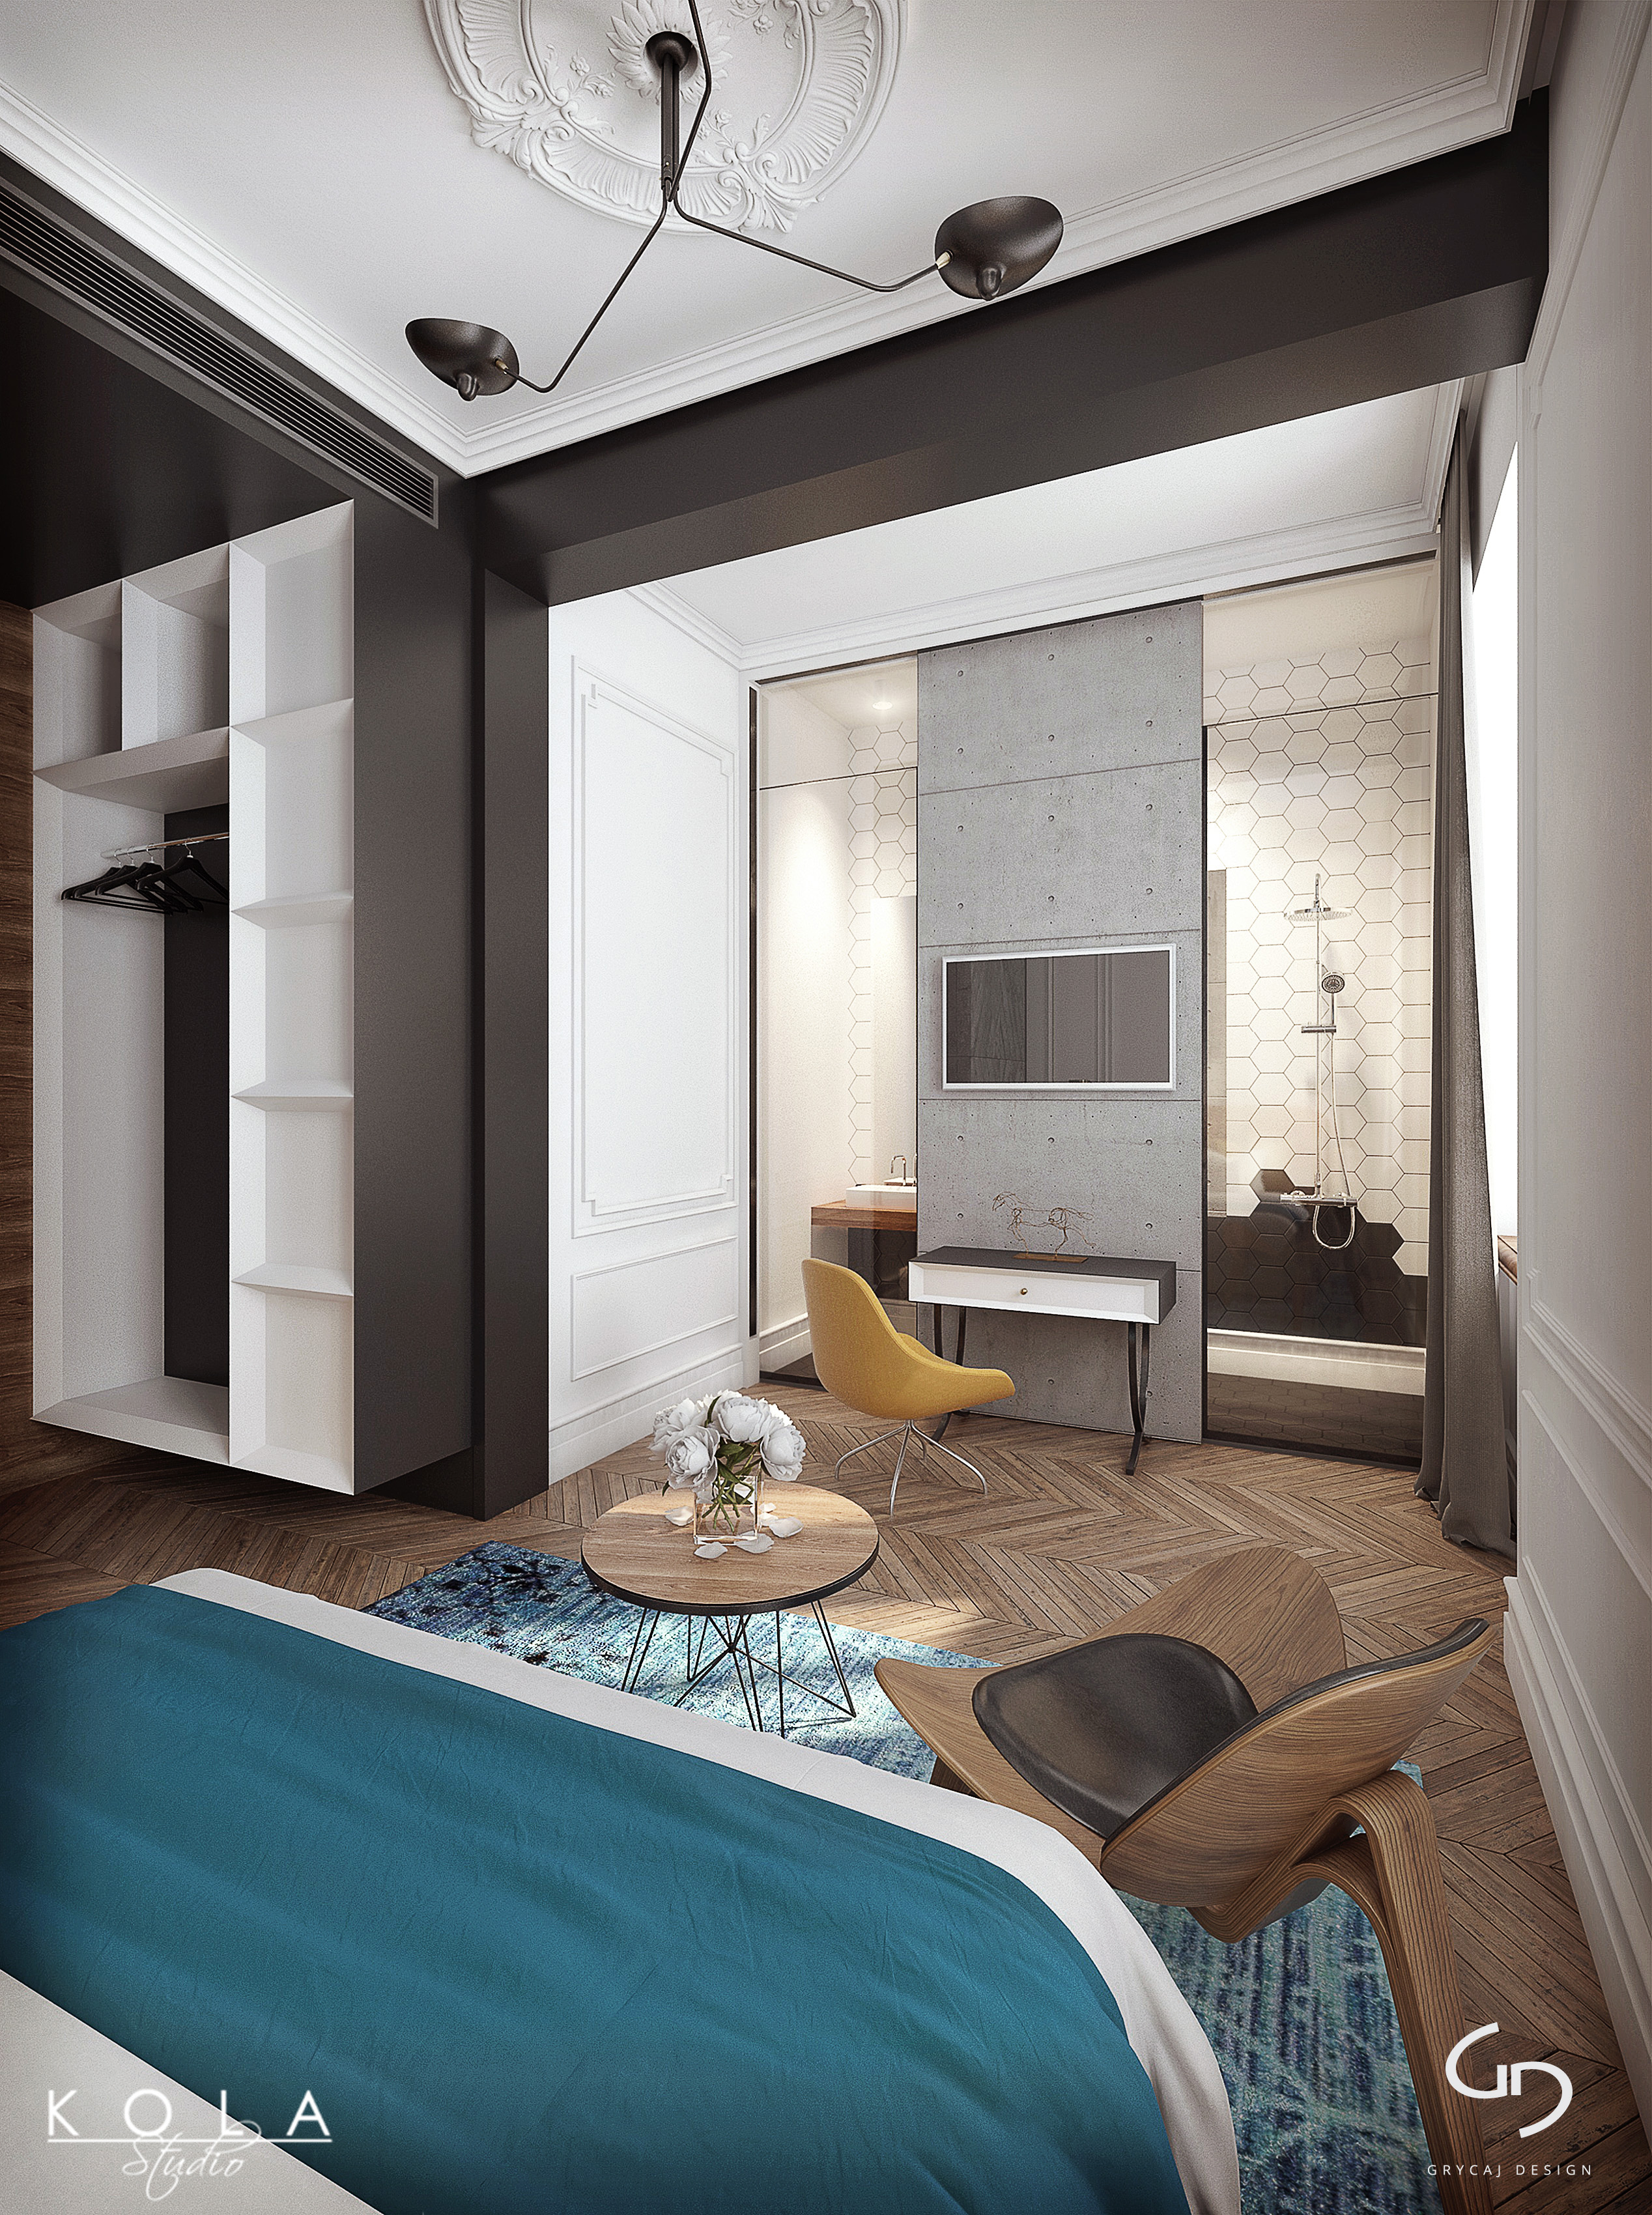 A Boutique Hotel Visualizations Of A Boutique Hotel Room Freelancers 3d